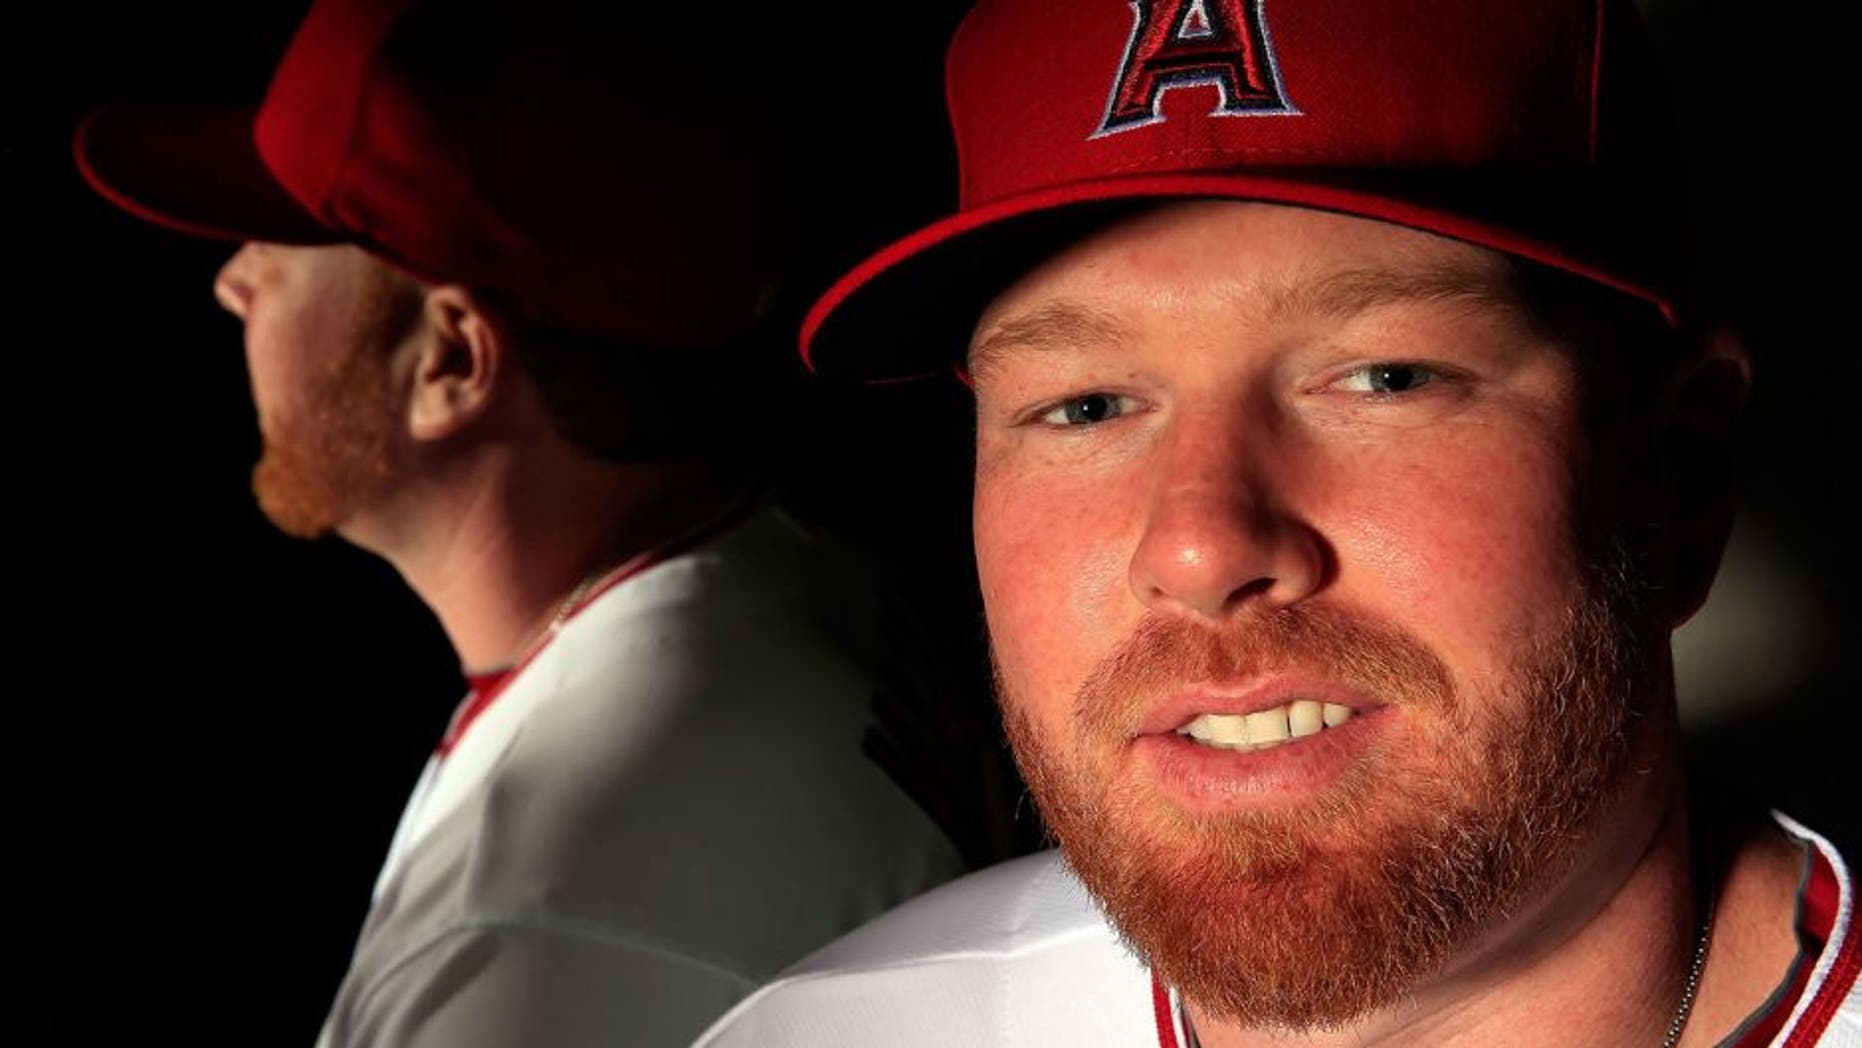 TEMPE, AZ - FEBRUARY 21: Pitcher Tommy Hanson #48 poses during the Los Angeles Angels of Anaheim Photo Day on February 21, 2013 in Tempe, Arizona. (Photo by Jamie Squire/Getty Images)